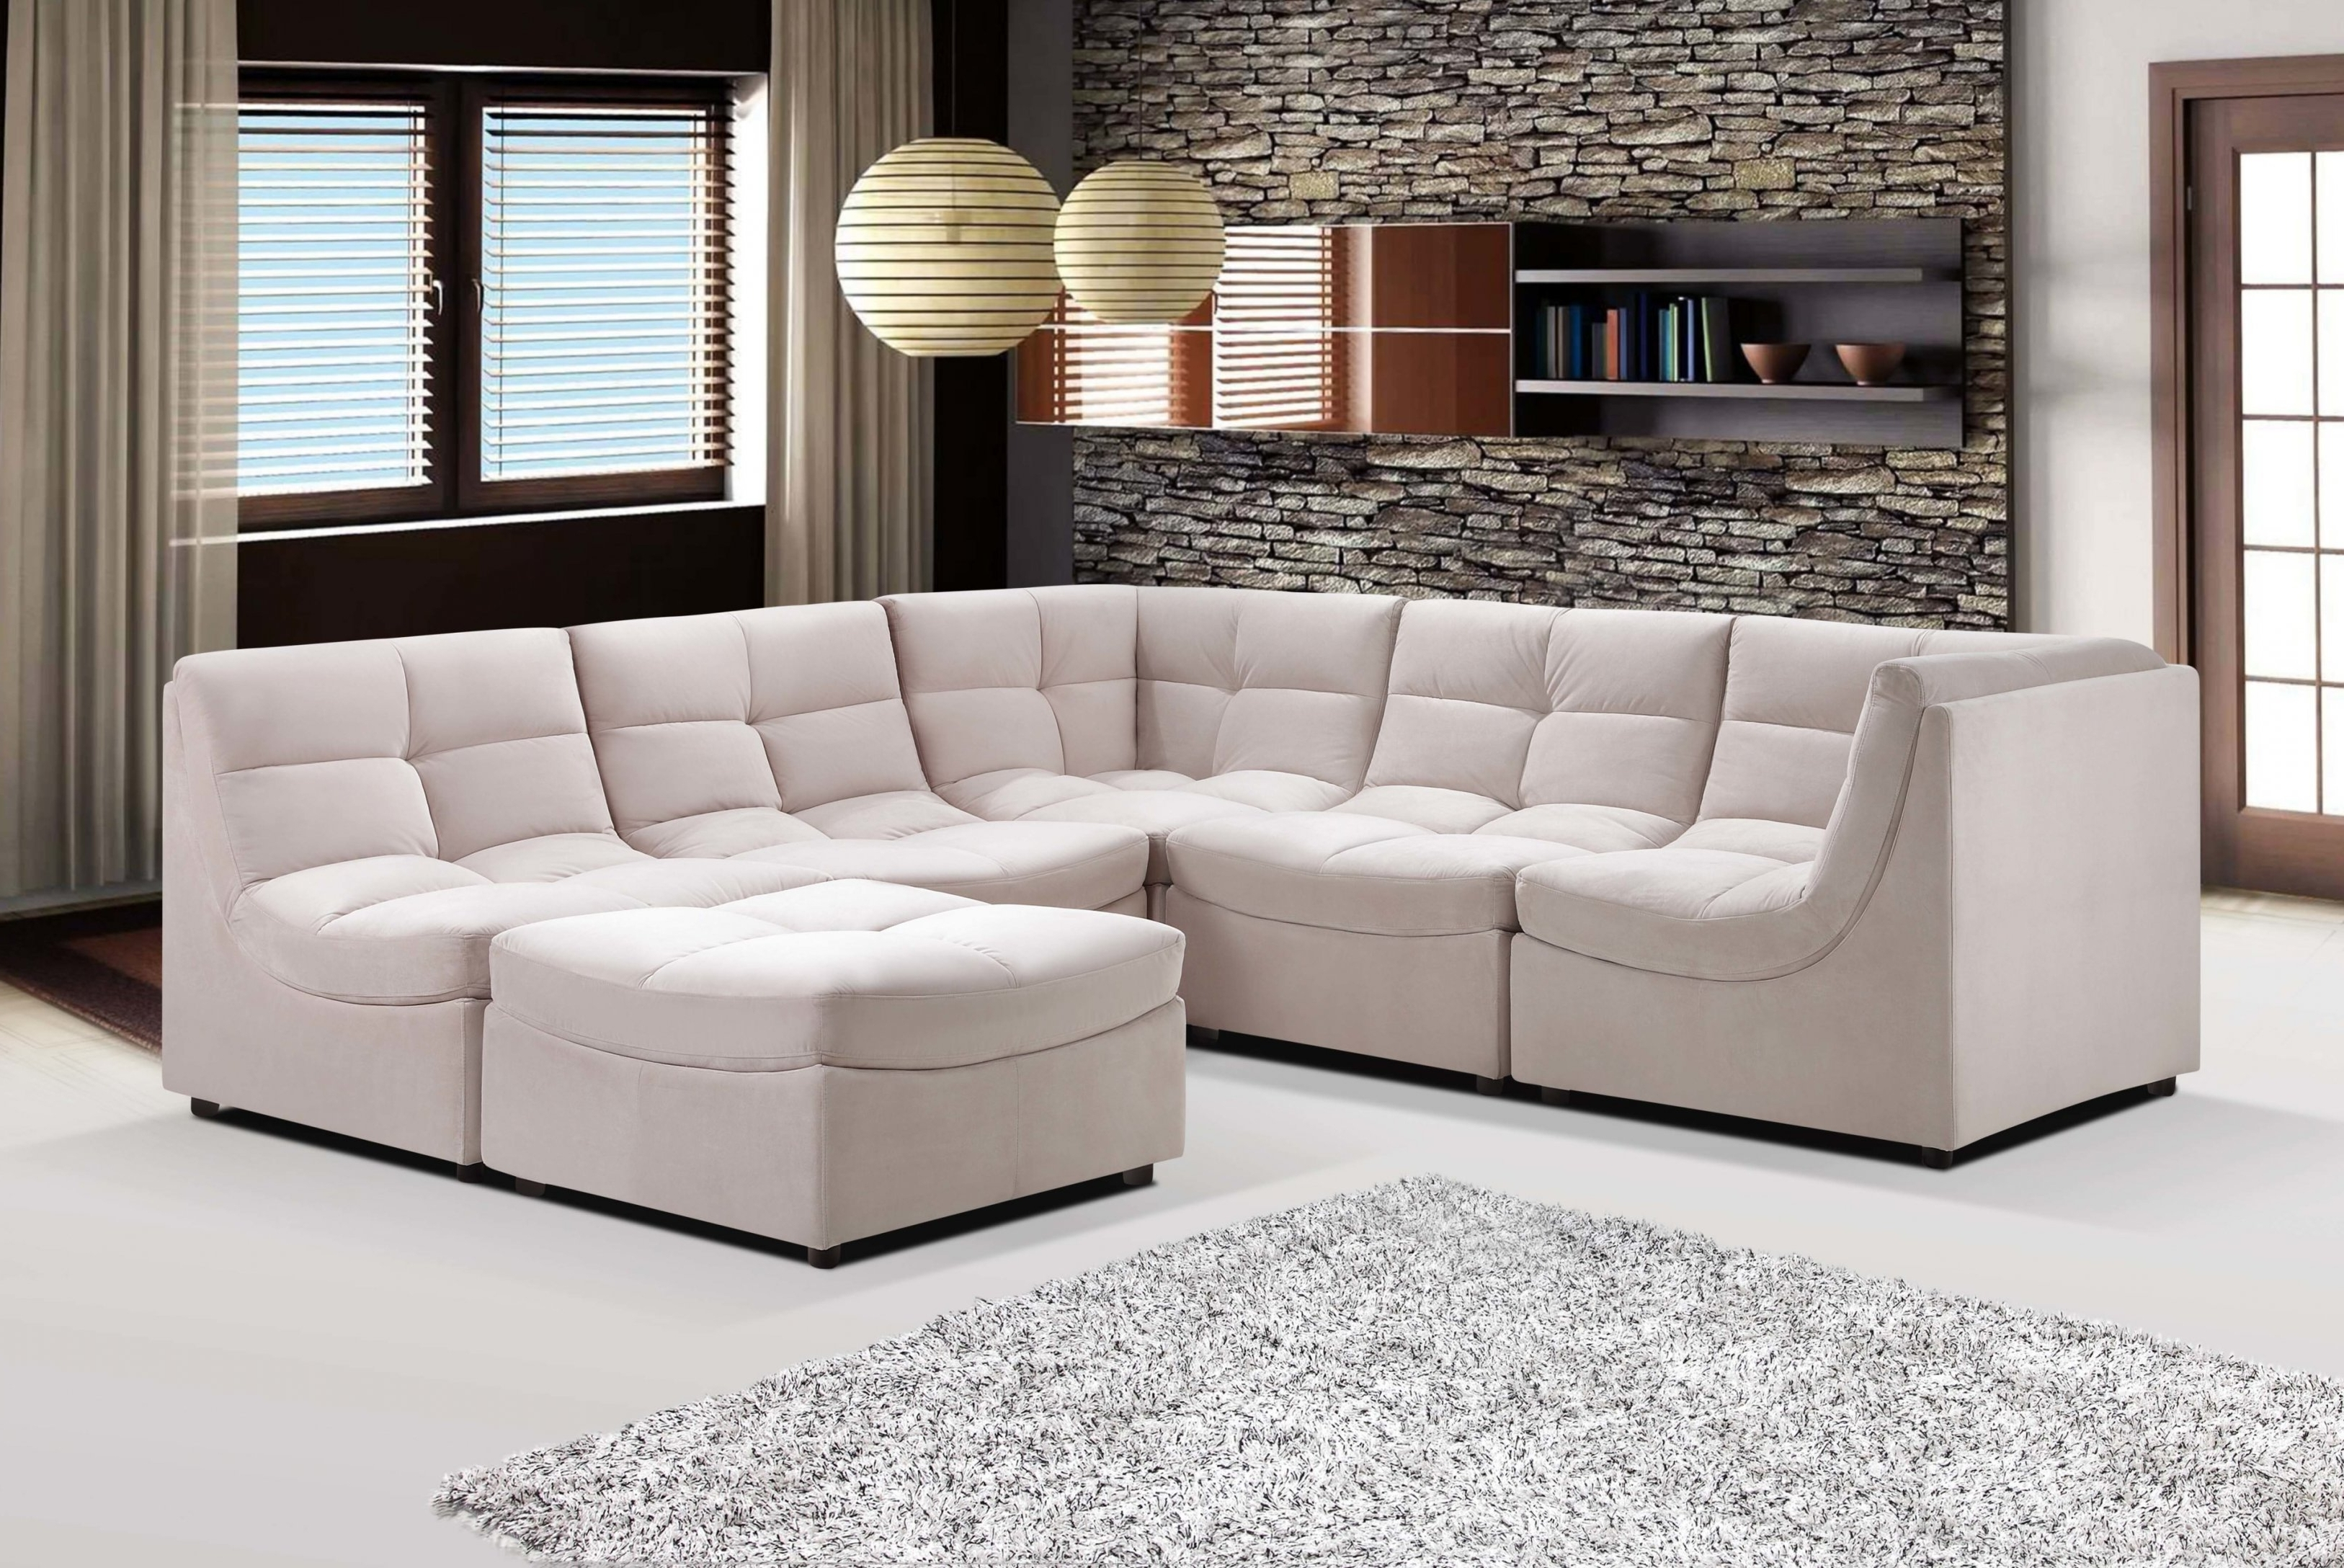 Latest Leather Modular Sectional Sofas For Small Modular Sectional Sofa 21 For Your Sofa Sectionals For Cloud (View 13 of 15)